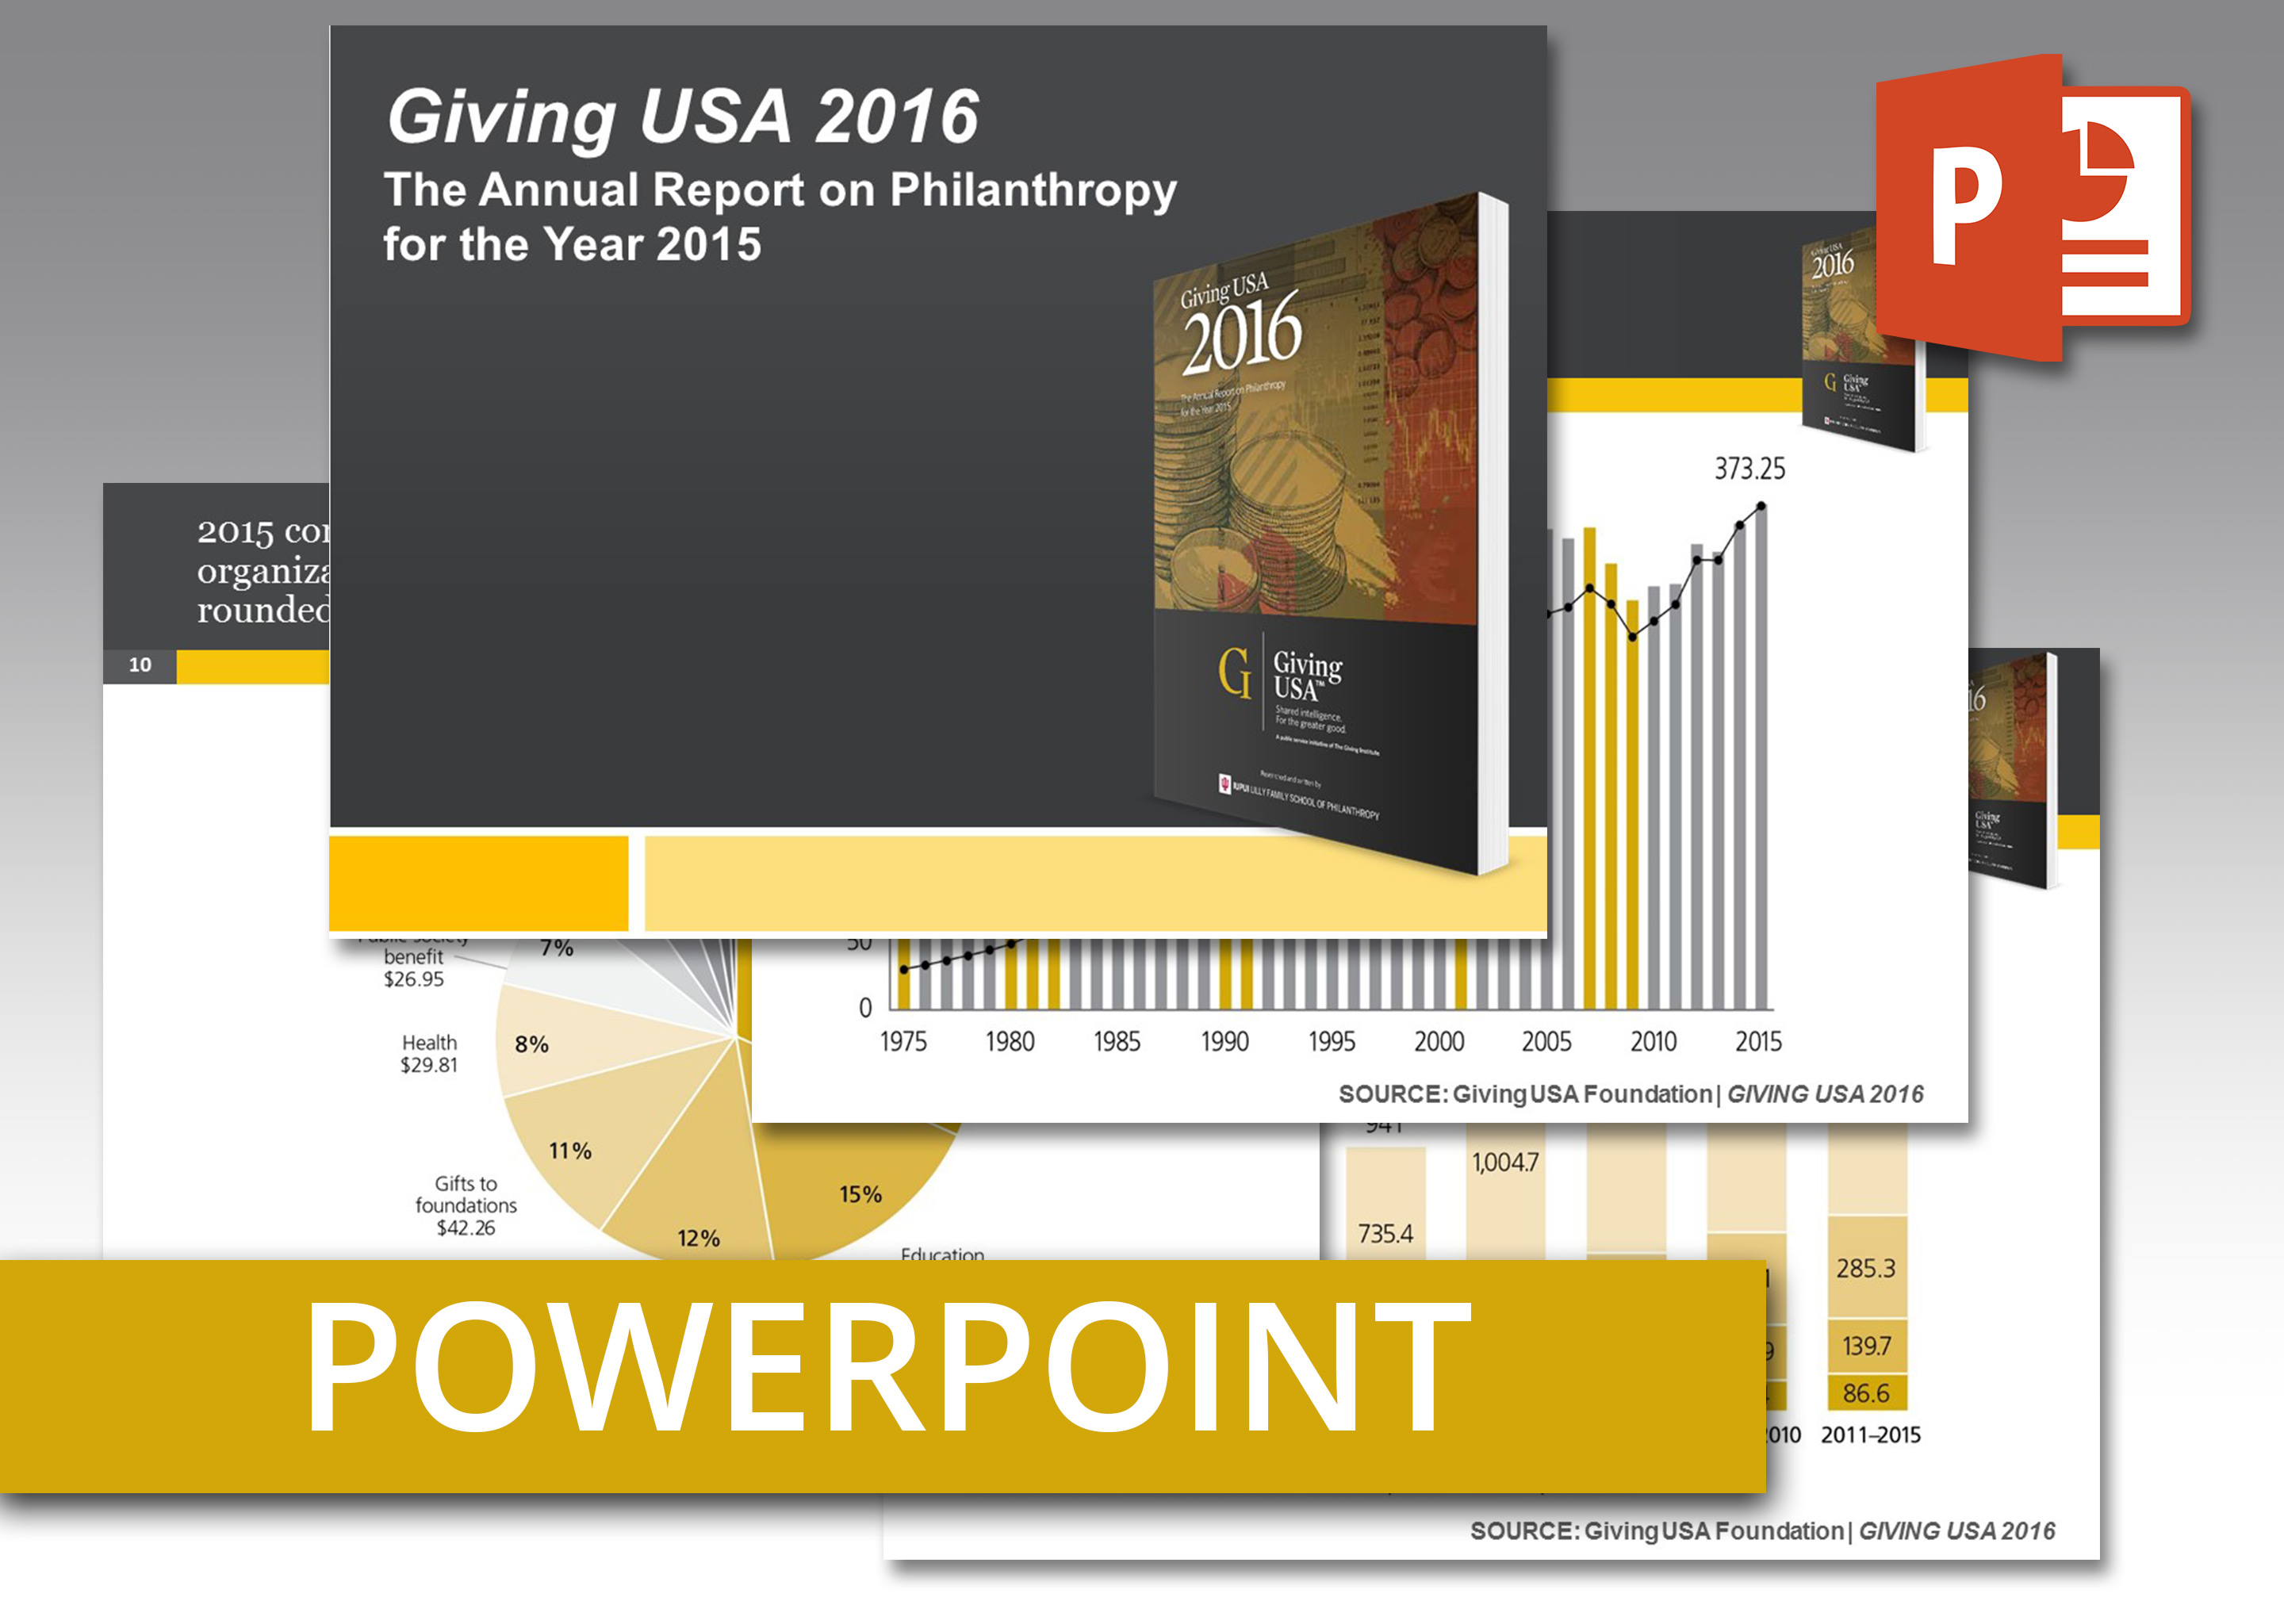 Coolmathgamesus  Marvelous Giving Usa  Powerpoint An Easytouse Presentation Of Report  With Marvelous Giving Usa  Powerpoint An Easytouse Presentation Of Report Findings Including Talking Points With Astounding Tips For Good Powerpoint Presentation Also German Unification Powerpoint In Addition Teacher Powerpoint Backgrounds And Download Powerpoint Themes  As Well As Powerpoint On Childhood Obesity Additionally How Do You Embed A Youtube Video In Powerpoint  From Givingusaorg With Coolmathgamesus  Marvelous Giving Usa  Powerpoint An Easytouse Presentation Of Report  With Astounding Giving Usa  Powerpoint An Easytouse Presentation Of Report Findings Including Talking Points And Marvelous Tips For Good Powerpoint Presentation Also German Unification Powerpoint In Addition Teacher Powerpoint Backgrounds From Givingusaorg